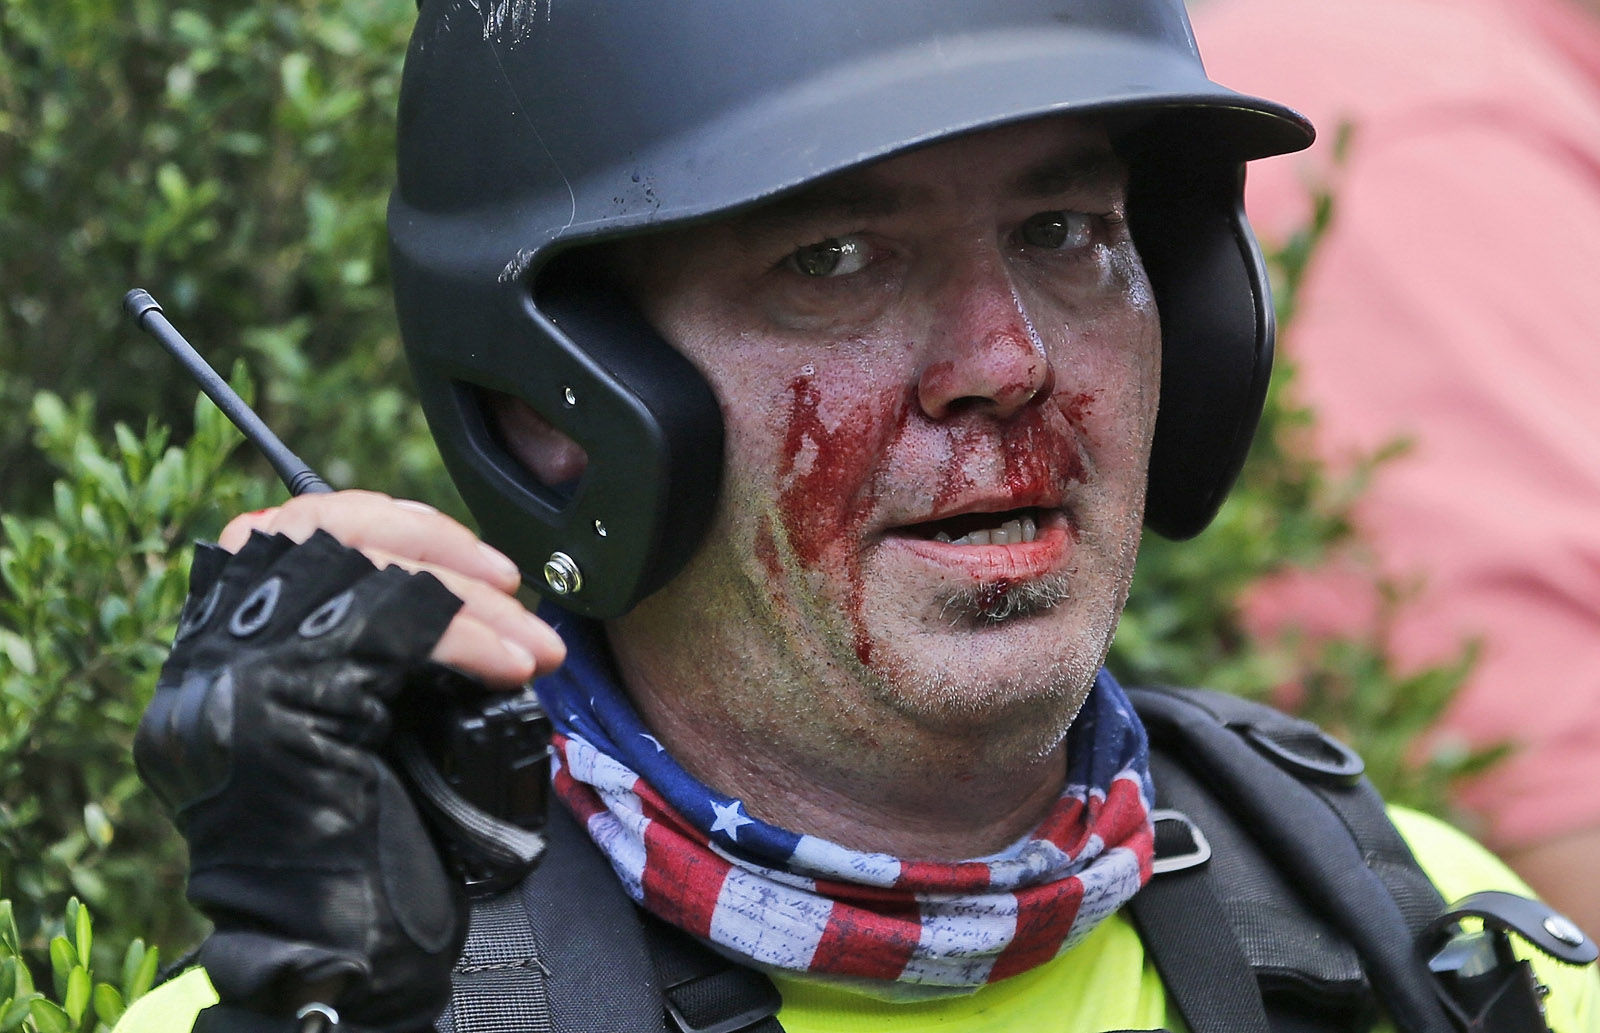 FILE-In this Saturday, Aug. 12, 2017 file photo, a white nationalist demonstrator, bloodied after a clash with a counter demonstrator, talks on the radio receiver at the entrance to Lee Park in Charlottesville, Va. How Virginia chooses to remember its past is still a highly combustible issue, as shown by the deadly violence that erupted at a white nationalist rally in Charlottesville last weekend over plans to remove a statue of Confederate Gen. Robert E. Lee.(AP Photo/Steve Helber, File)